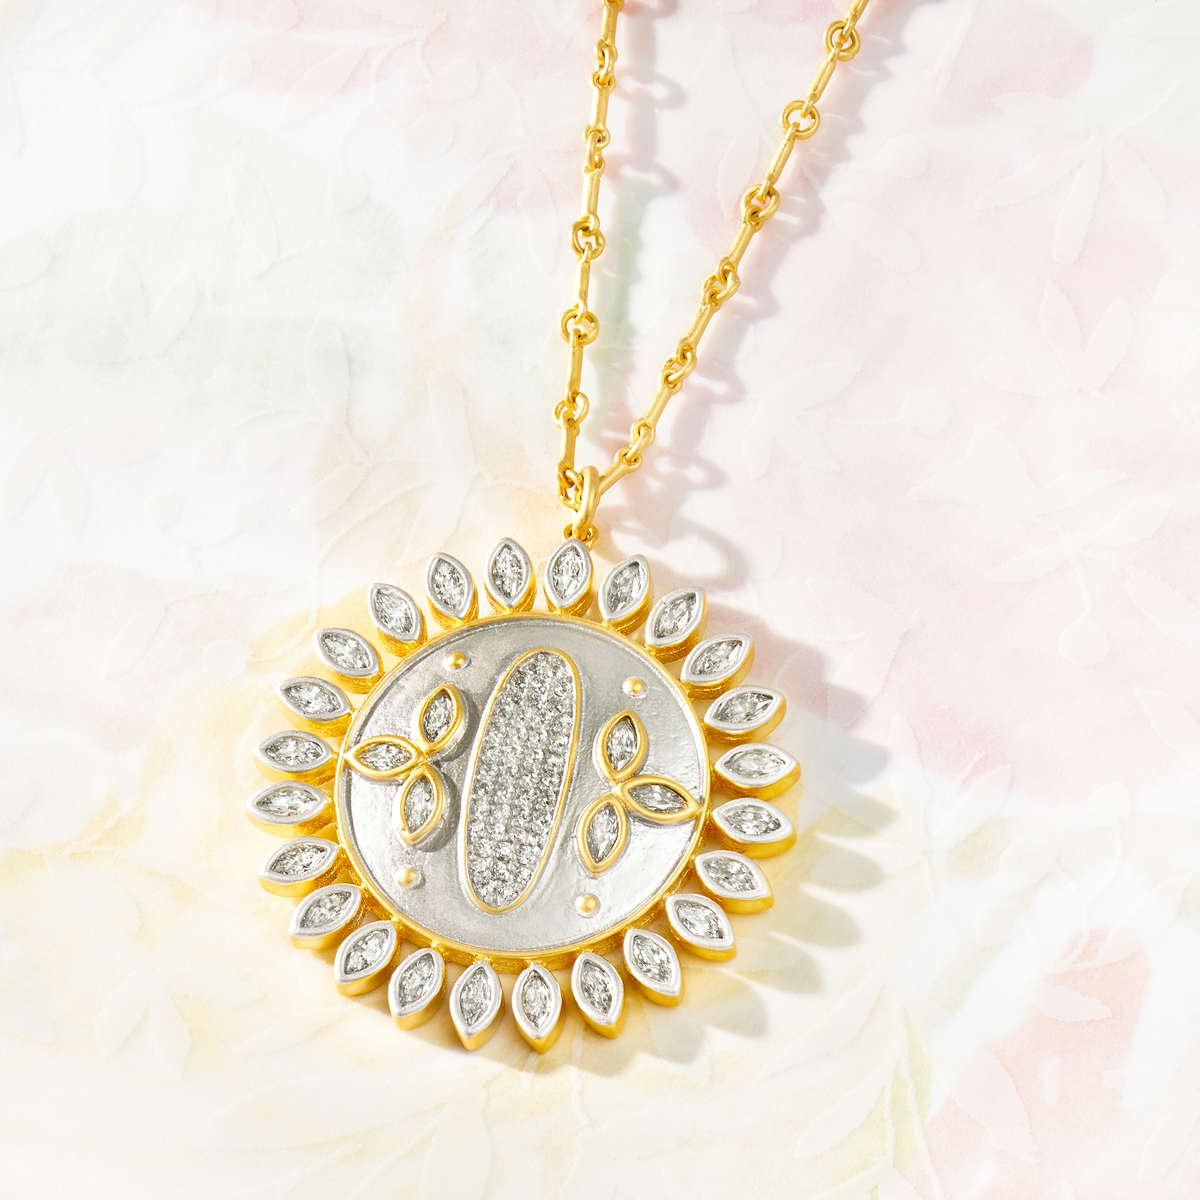 Fleur Bloom Starbust Pendant Necklace